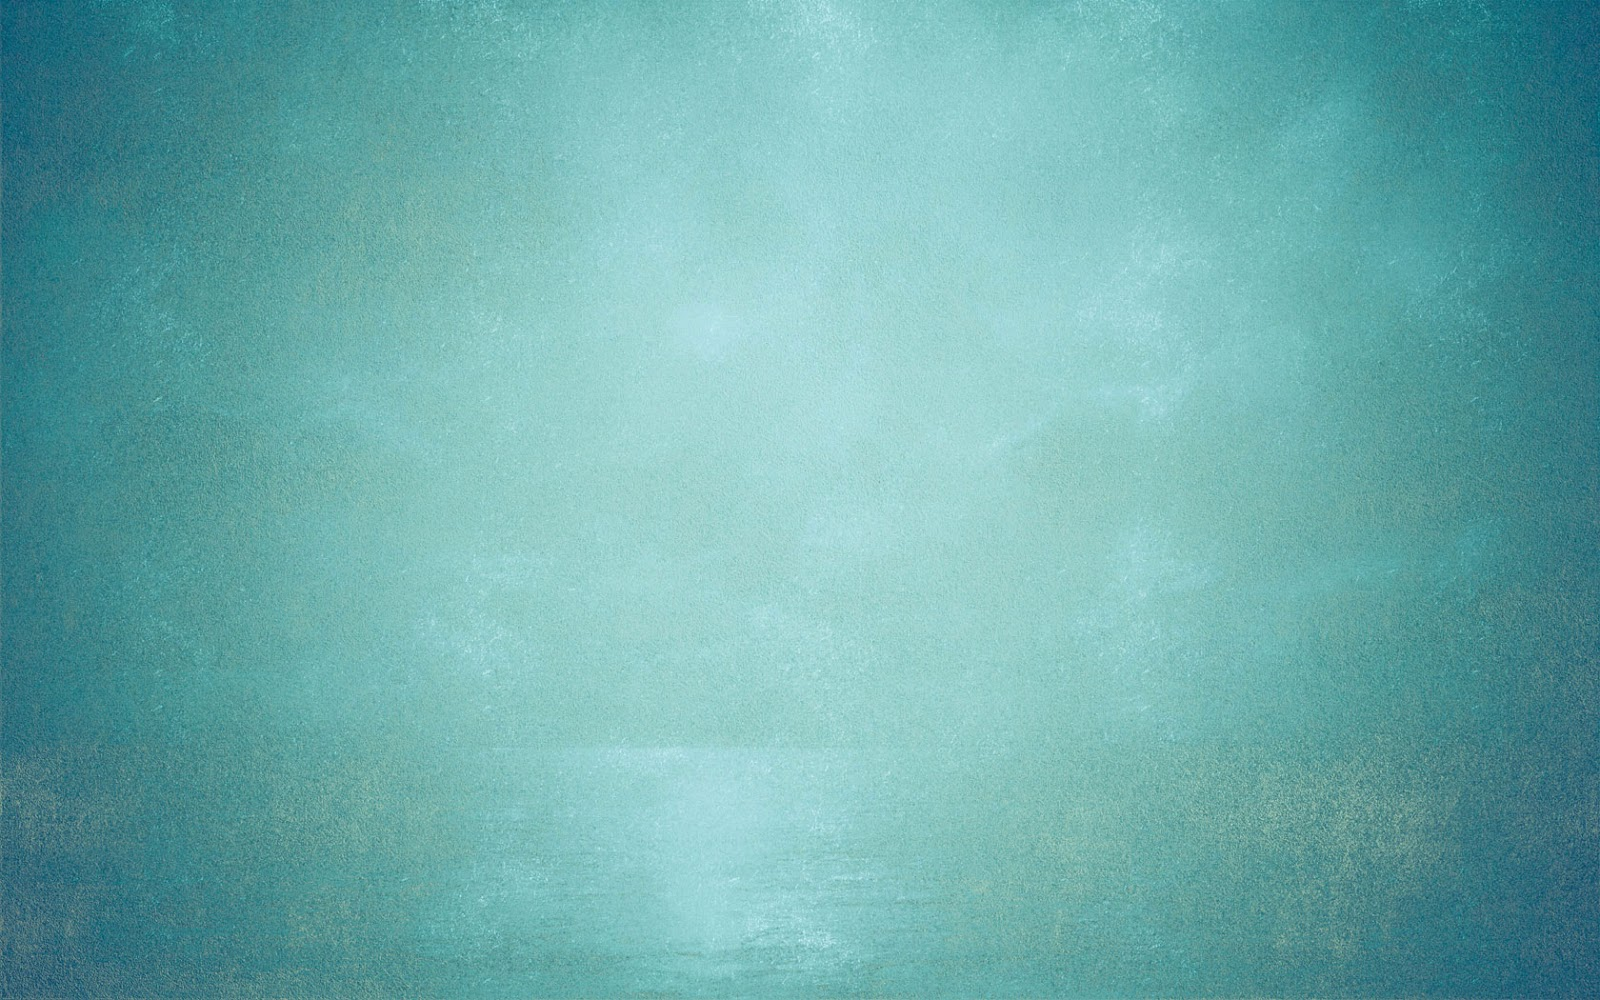 Teal backgrounds tumblr - photo#2